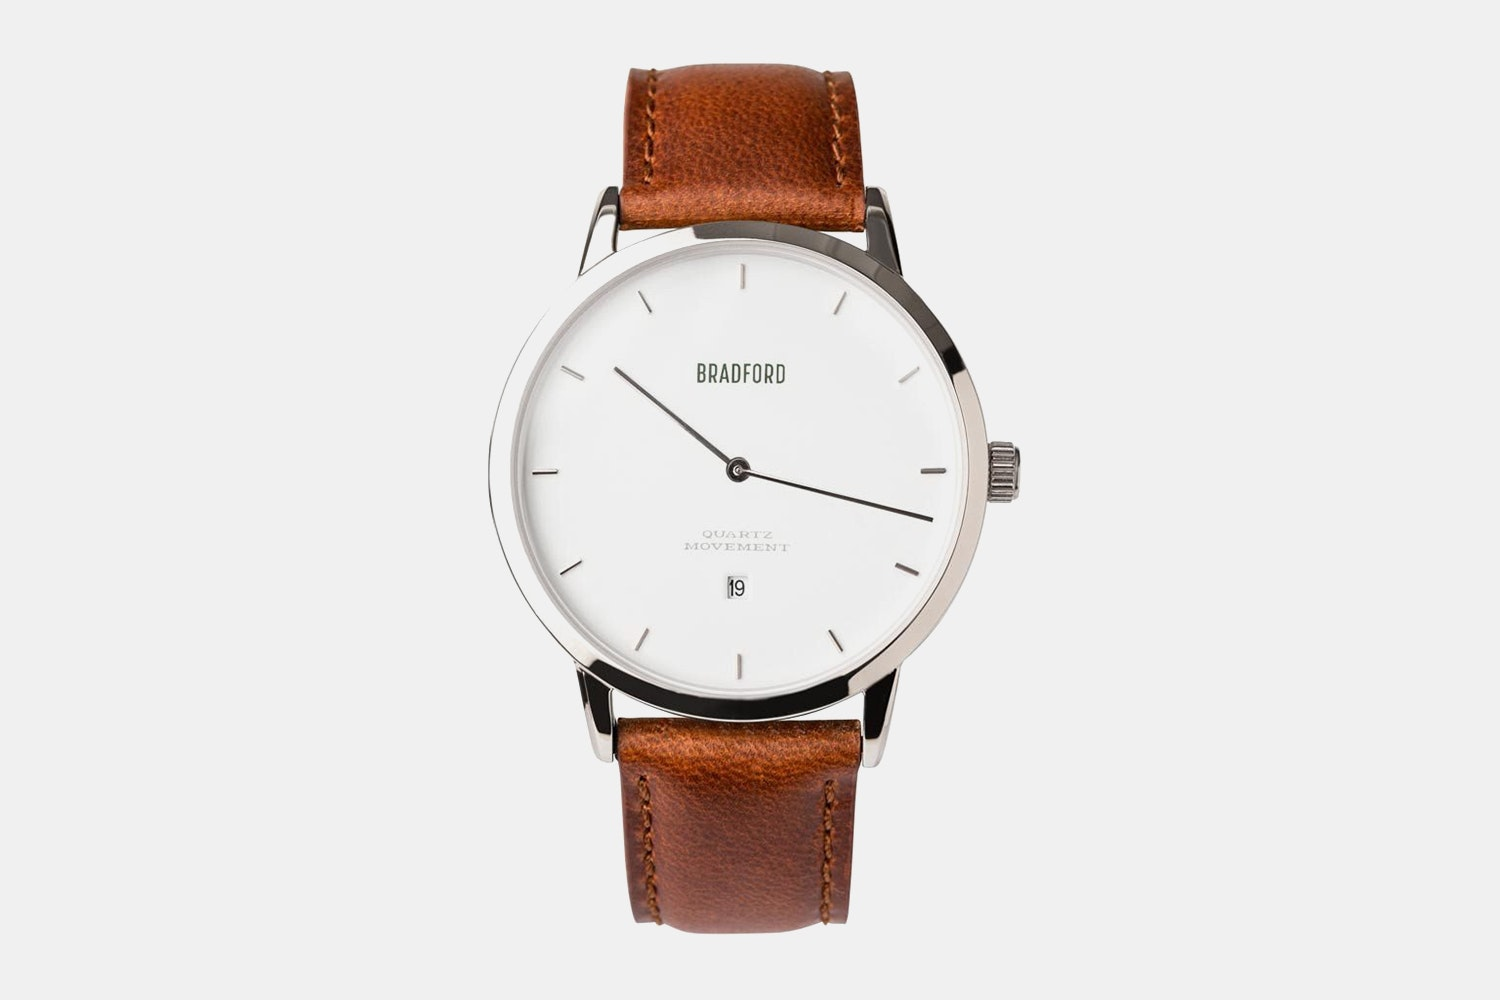 Stainless steel case, brown leather strap